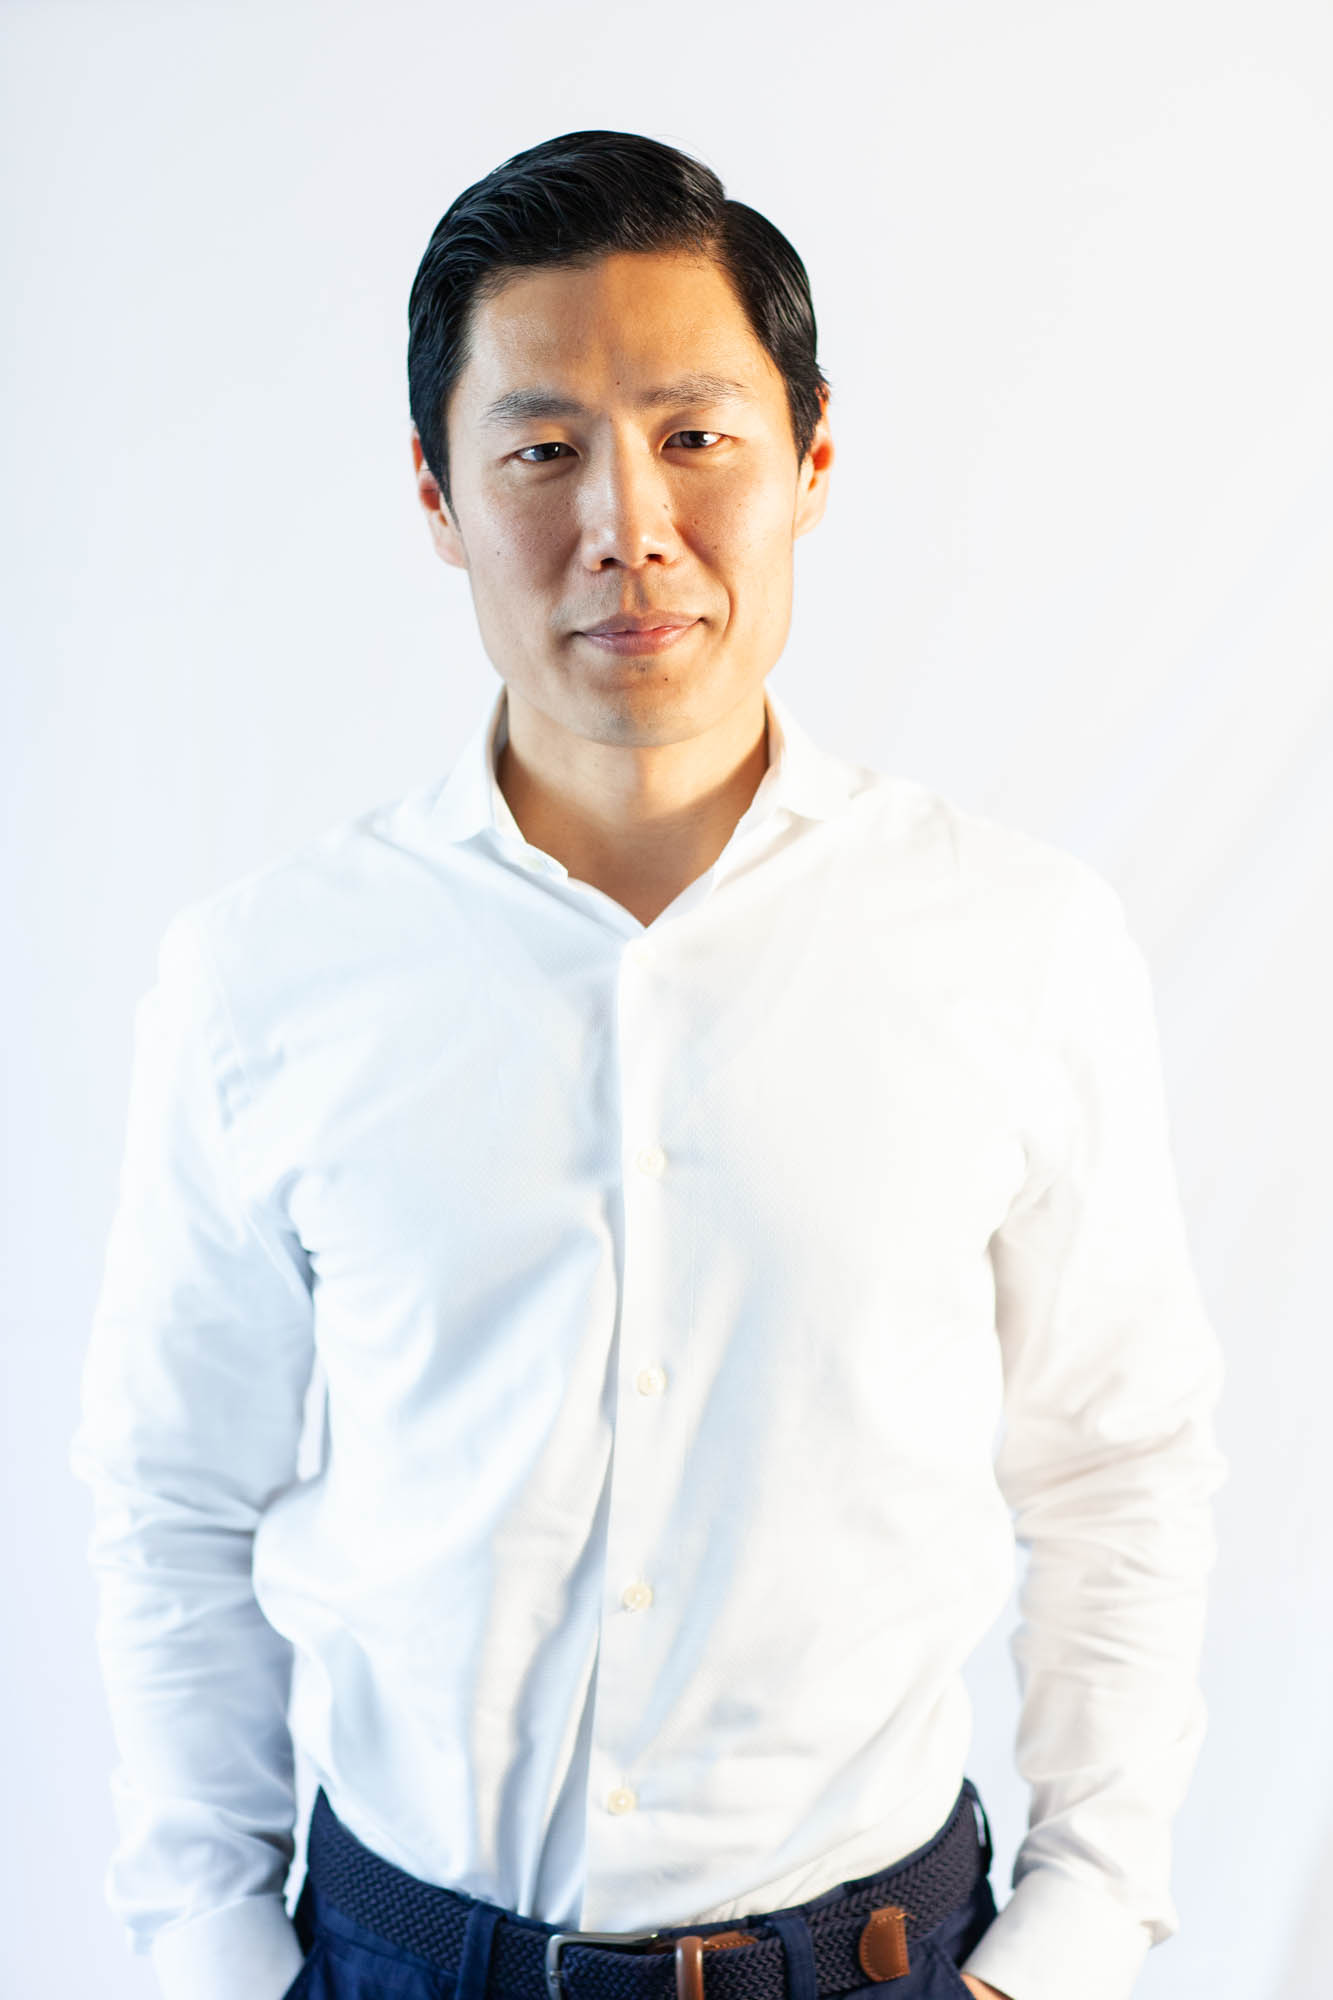 Wonolo's chief executive officer Yong Kim is calling on other corporate leaders to commit to a living wage for workers.